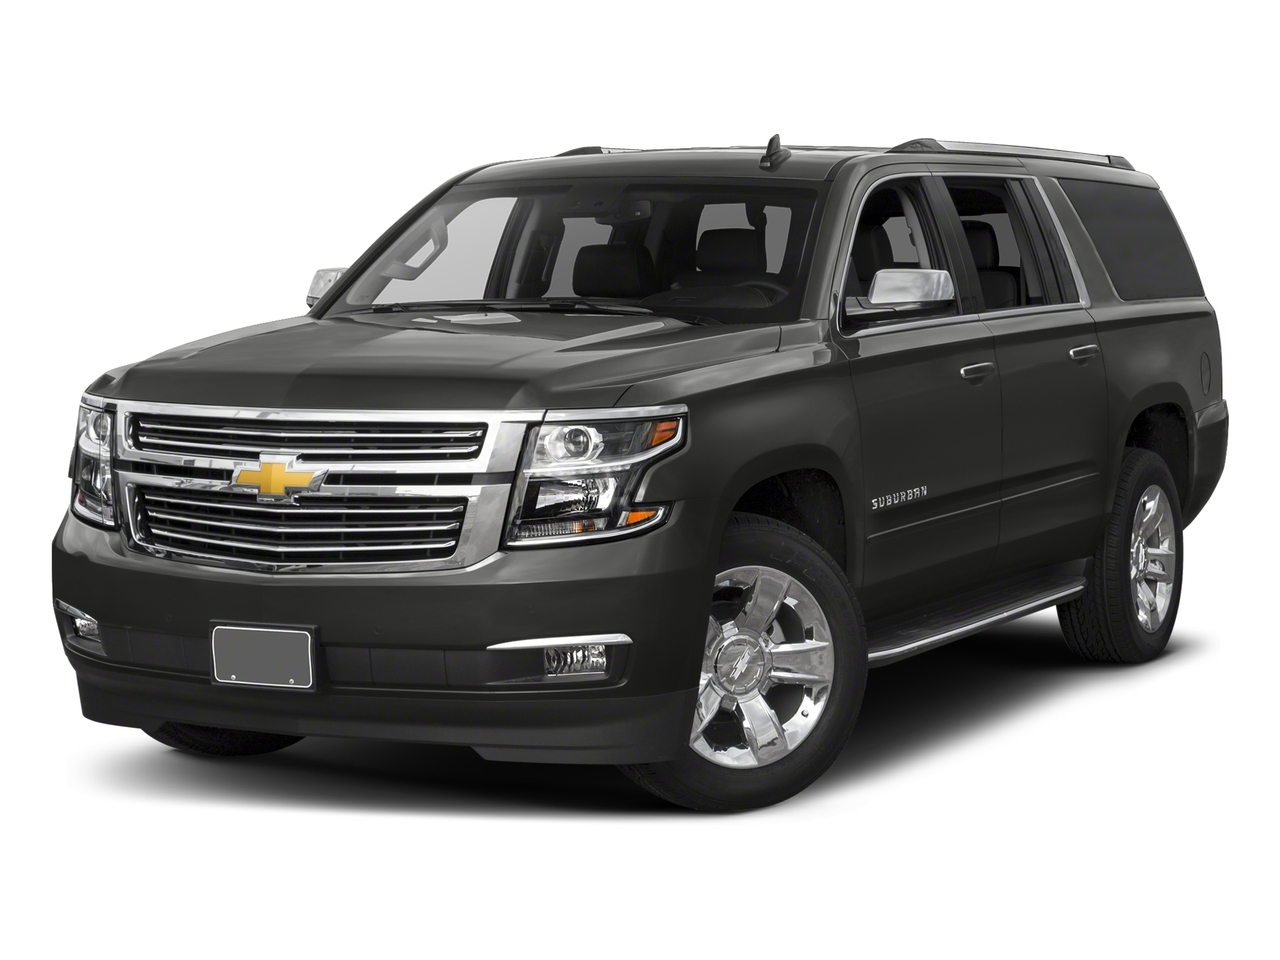 Tungsten Metallic 2017 Chevrolet Suburban PREMIER SUV Lexington NC